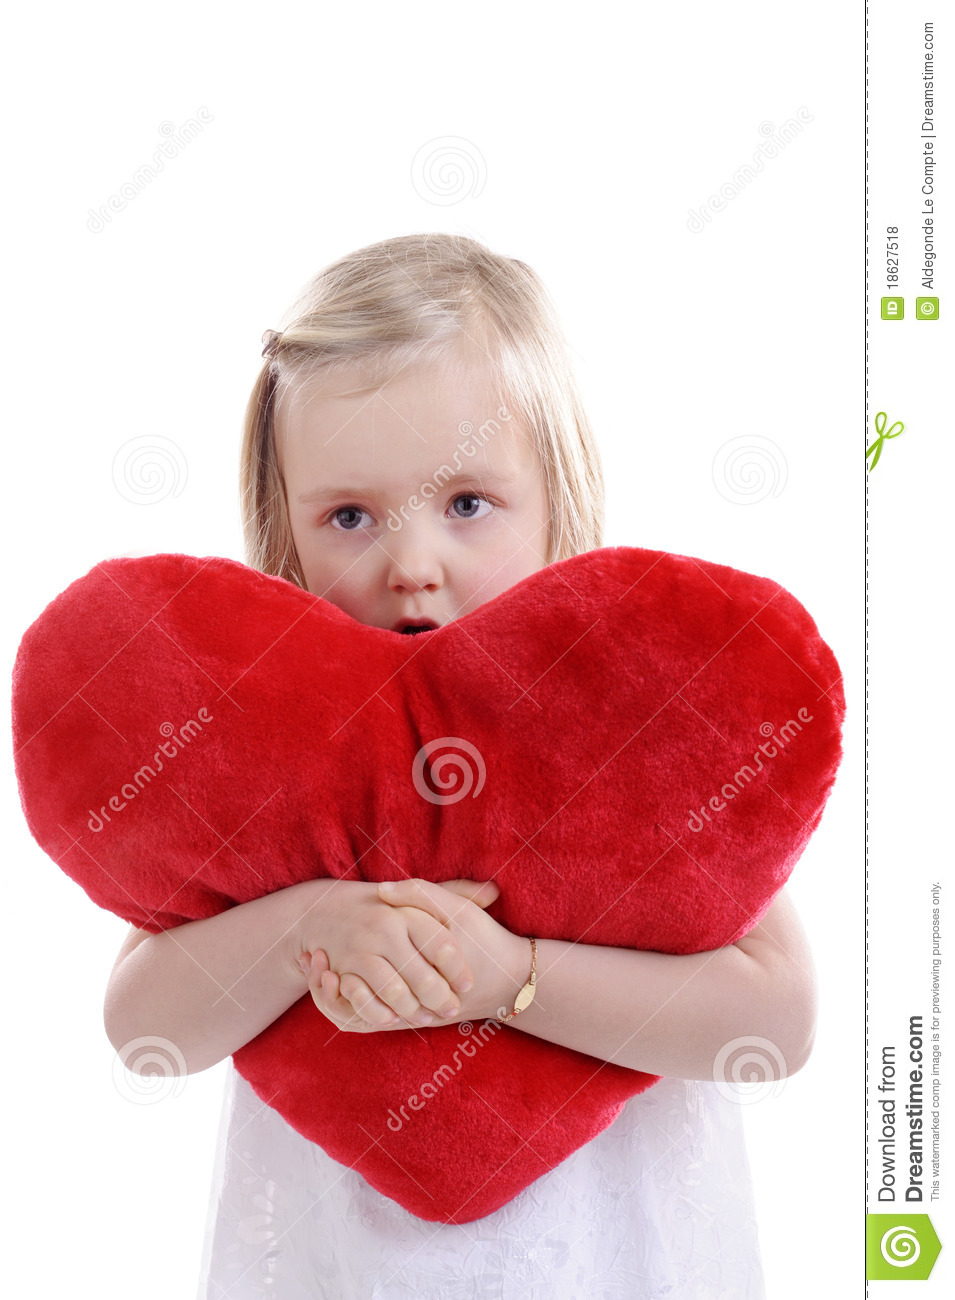 Heart Shaped Pillow With Picture Word 2007 Header Image